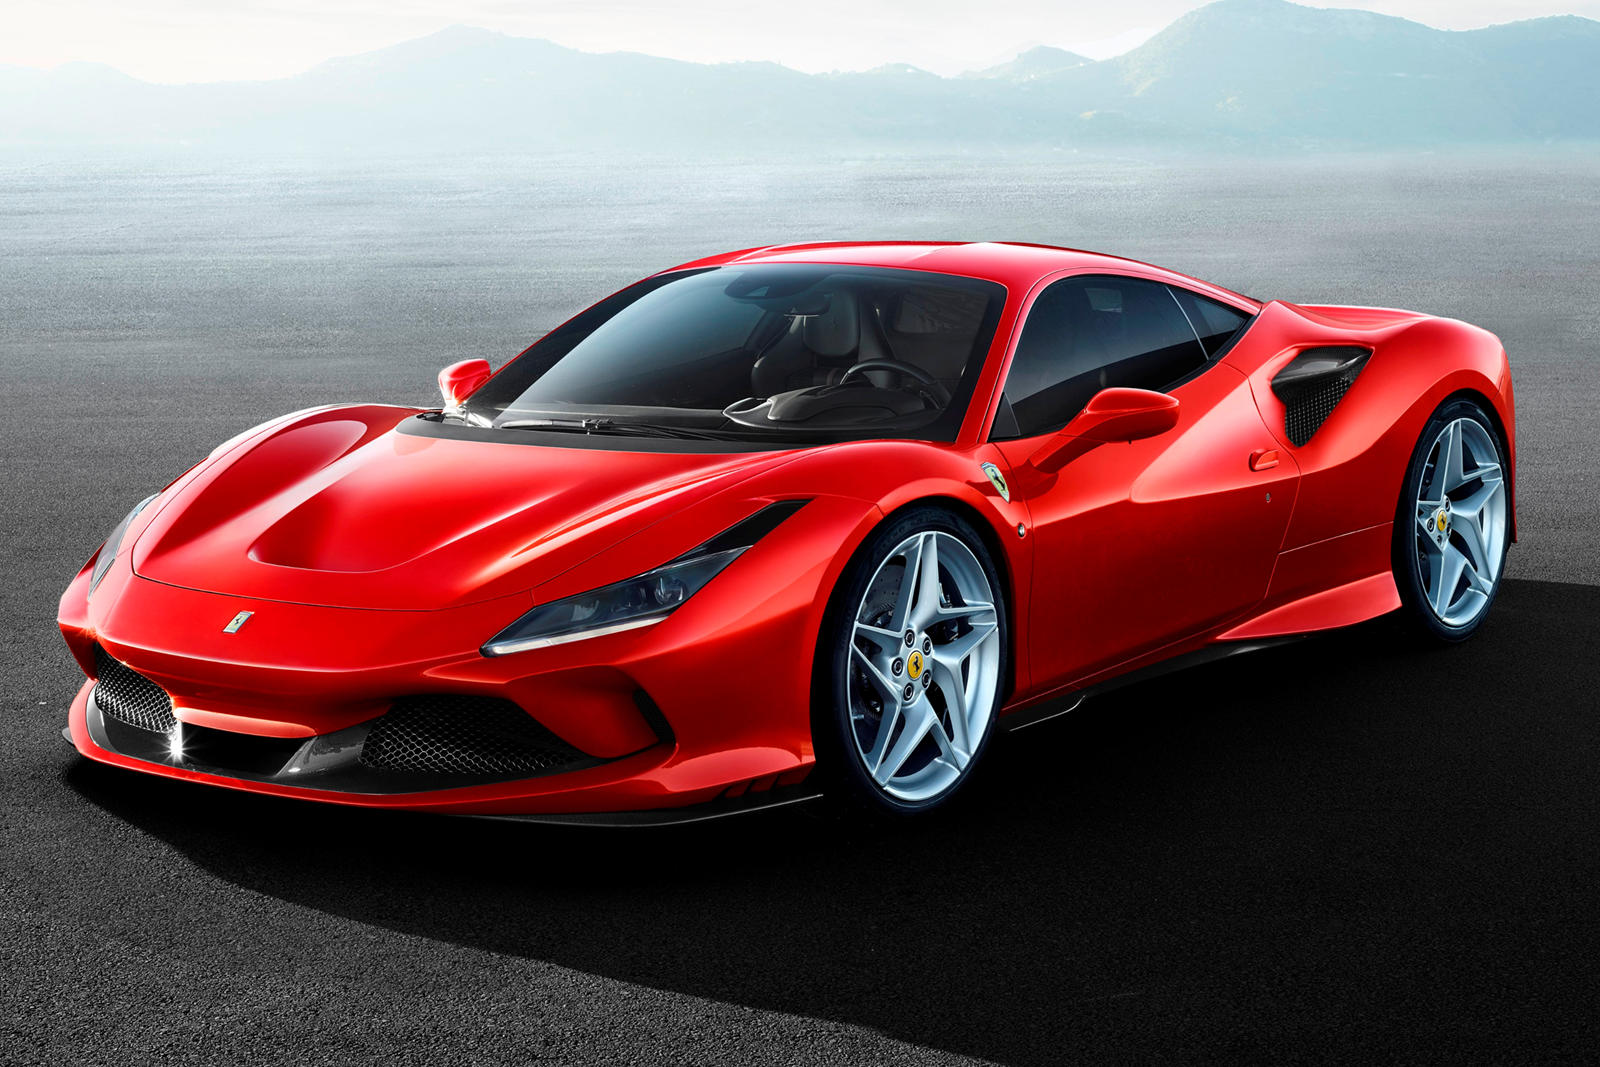 Ferrari F8 Tributo Revealed As The 488 GTB Replacement